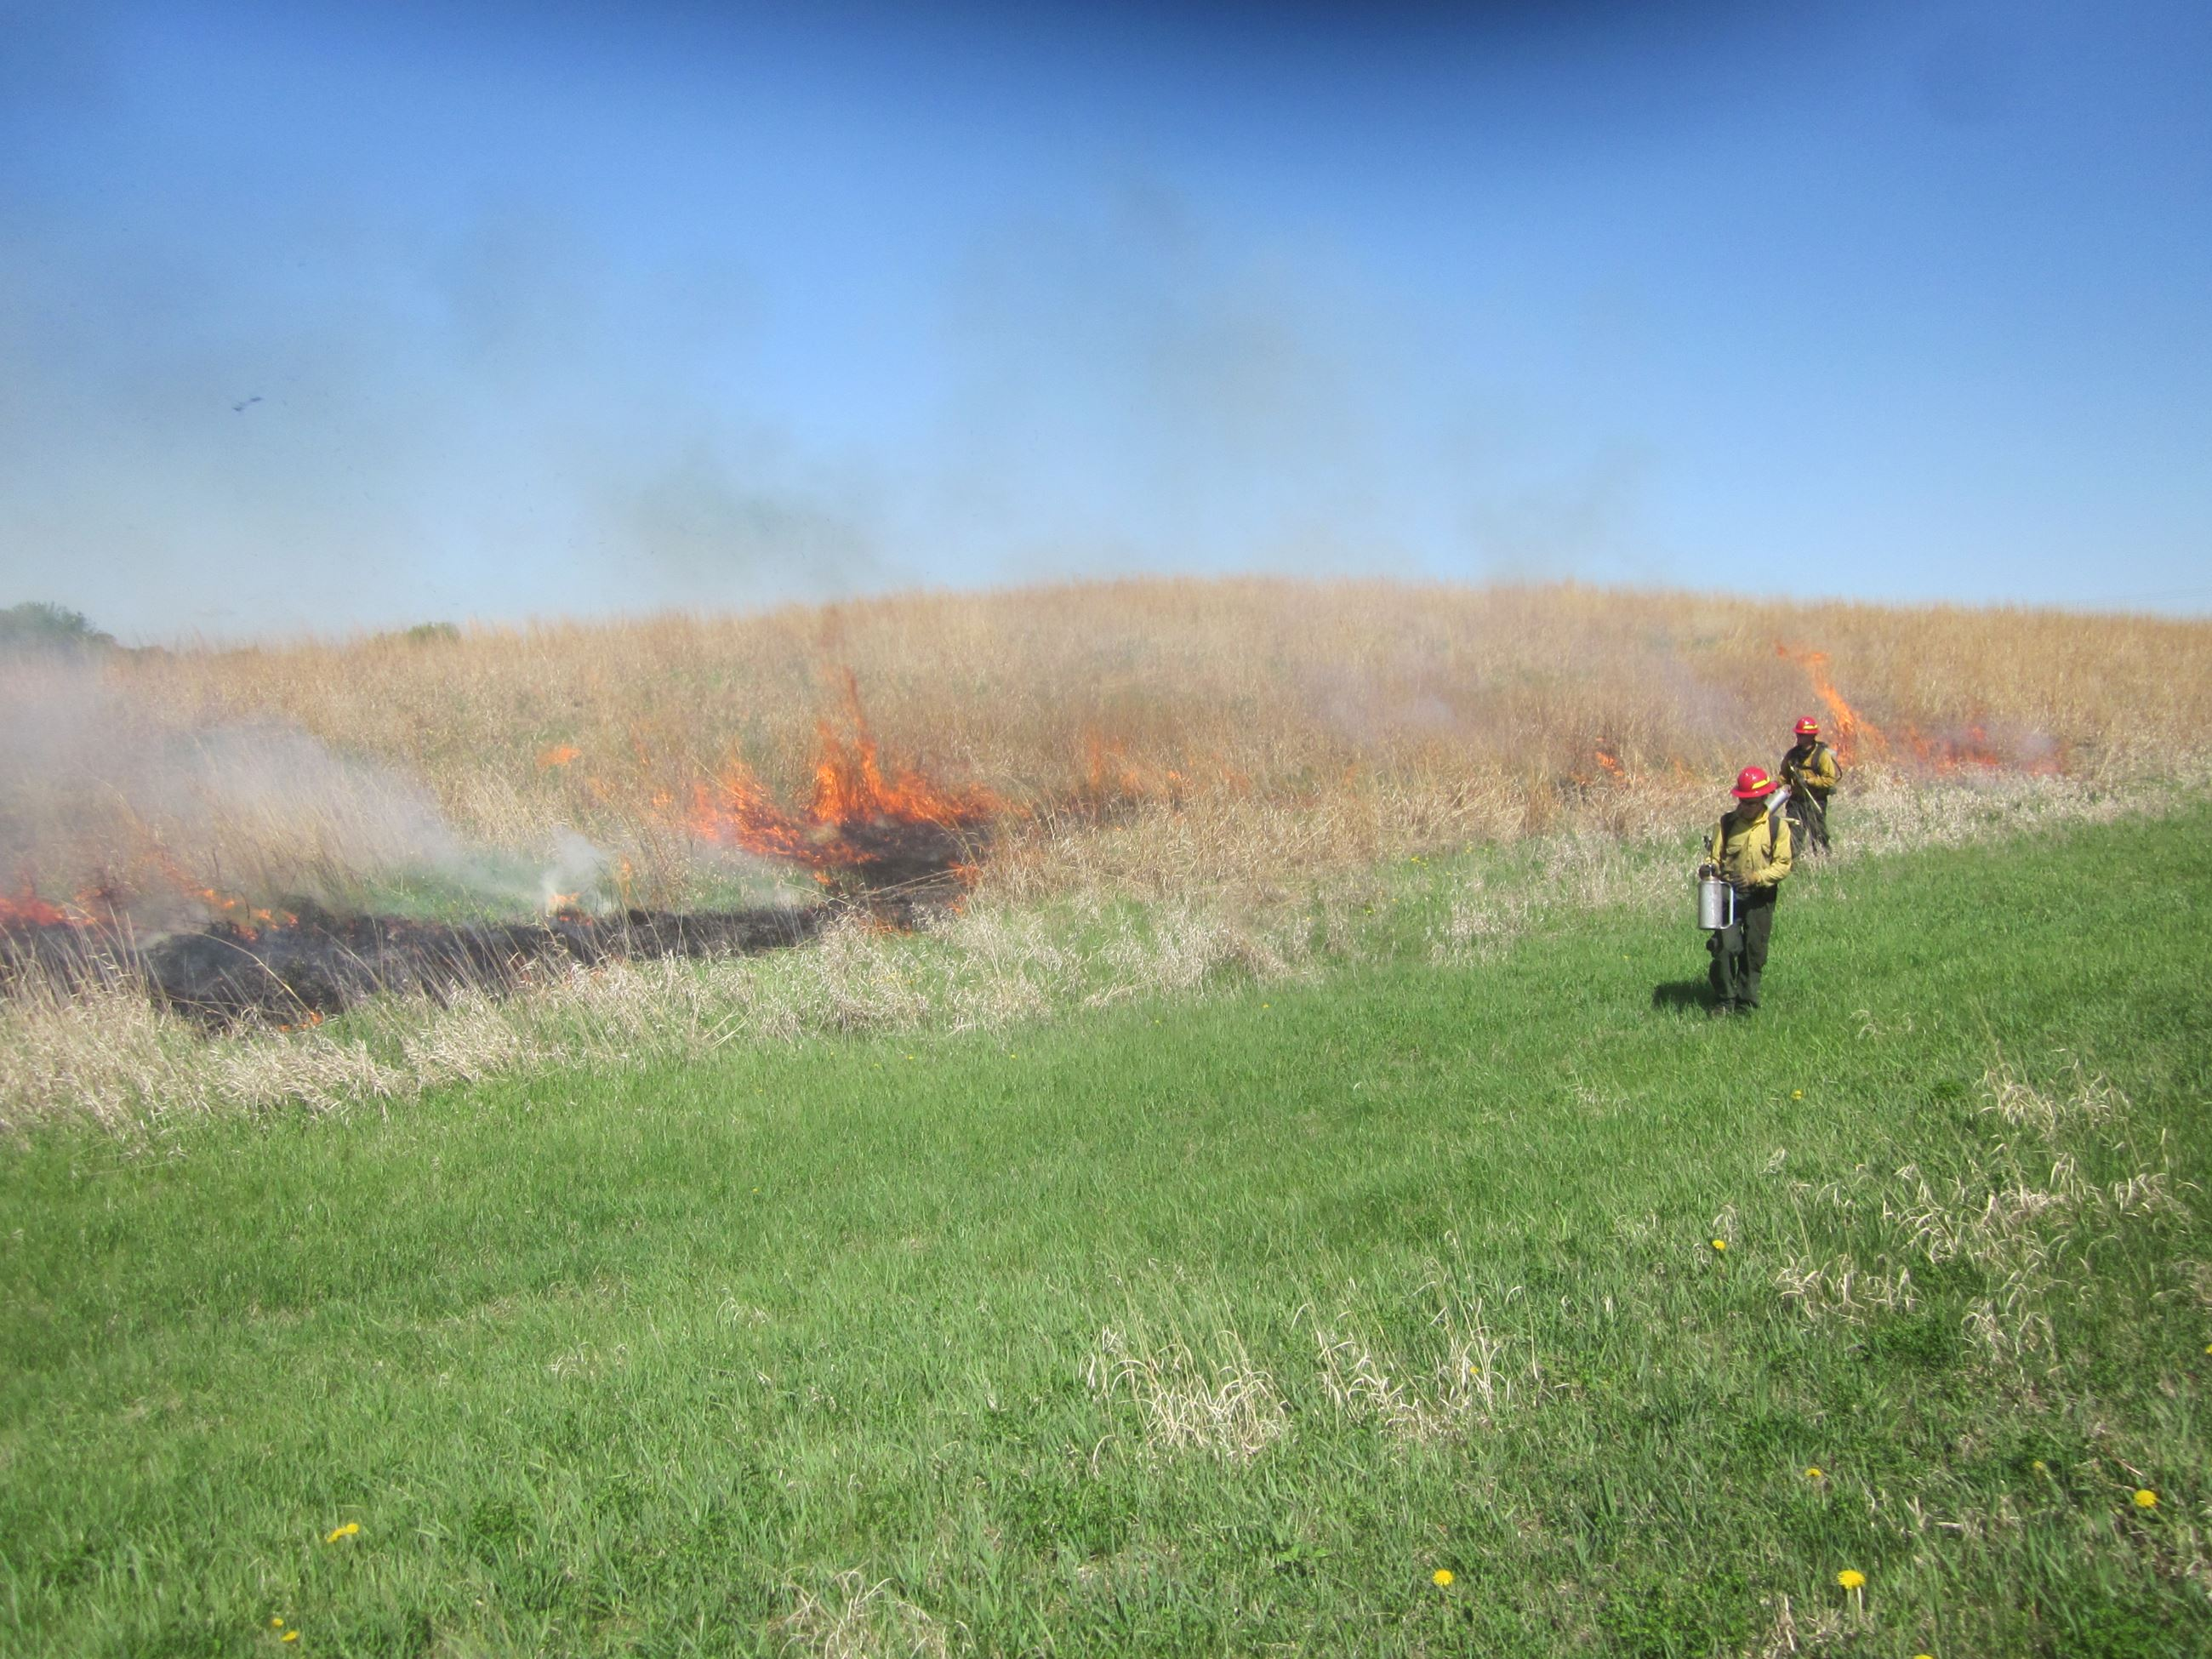 Prescribed Burns to Manage Prairie Grasses